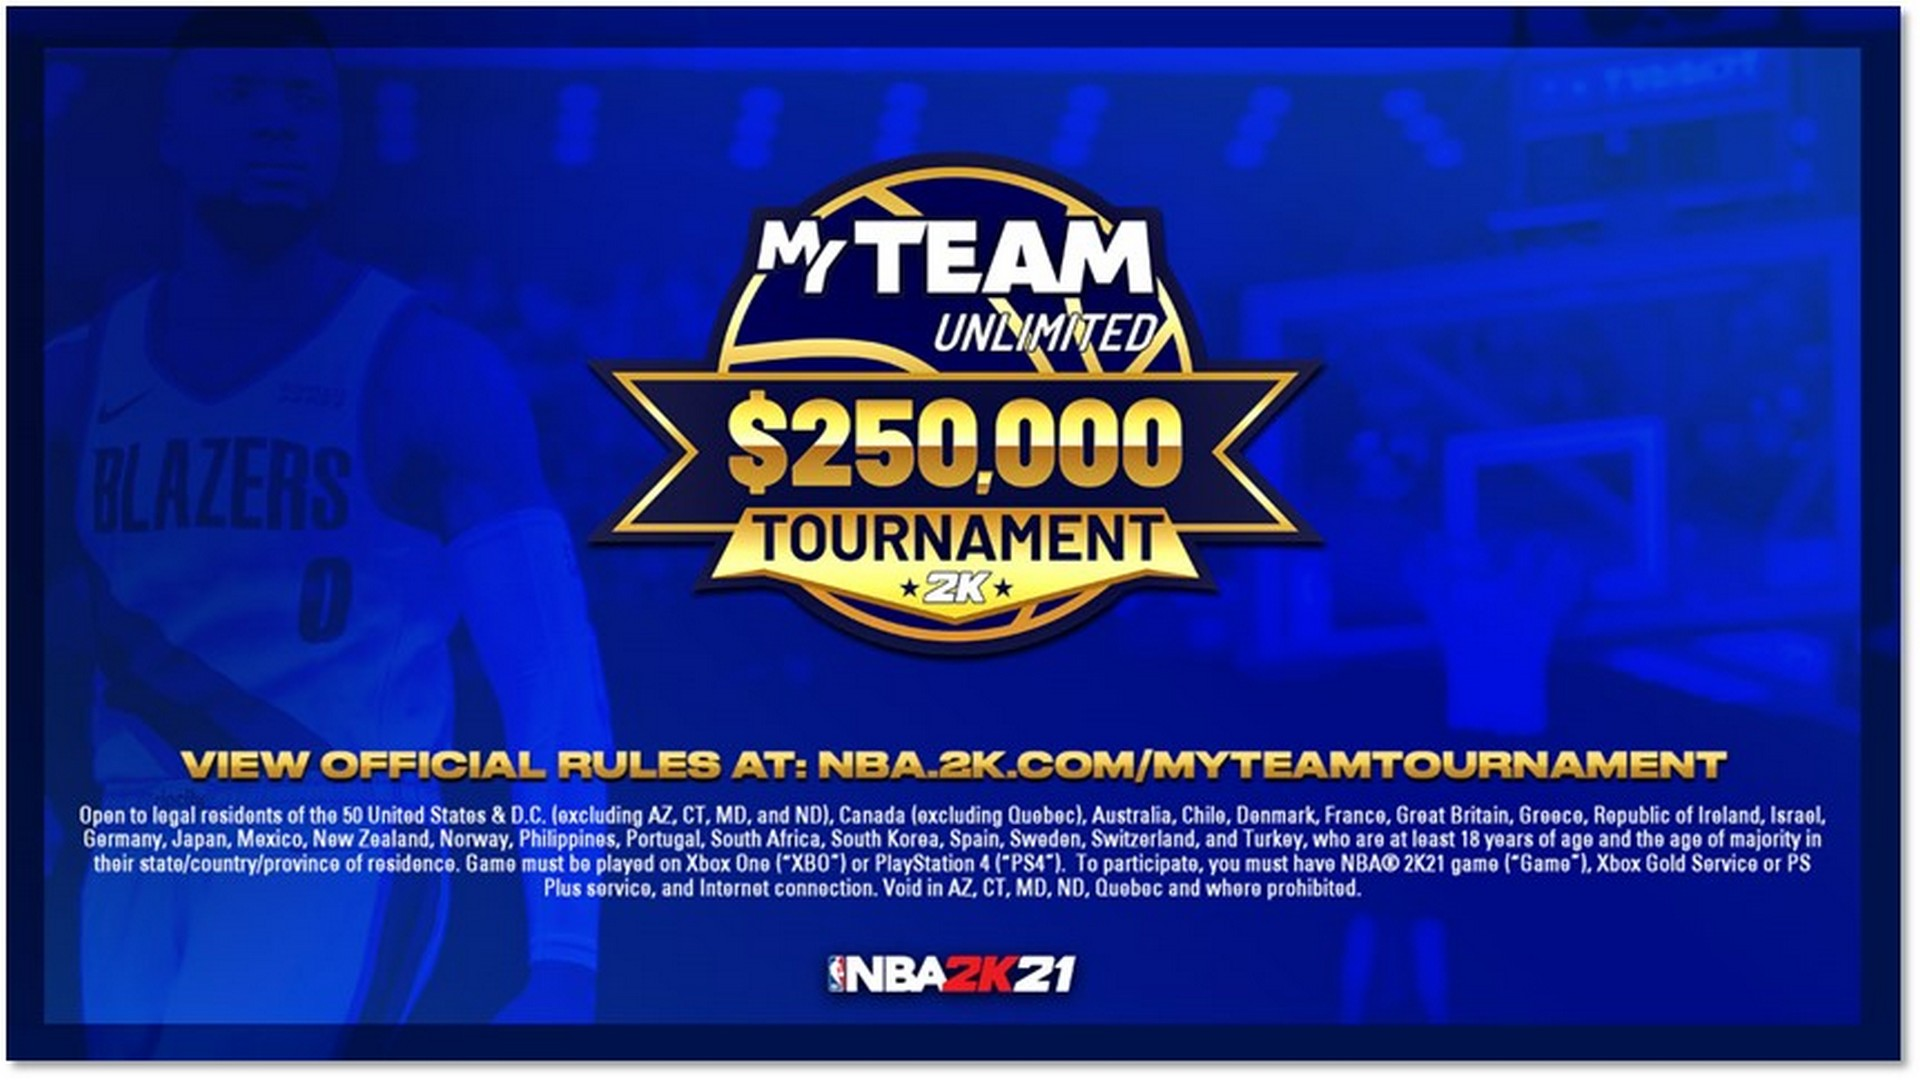 Get Ready To Compete In The NBA 2K21 MyTEAM Unlimited $250,000 USD Tournament